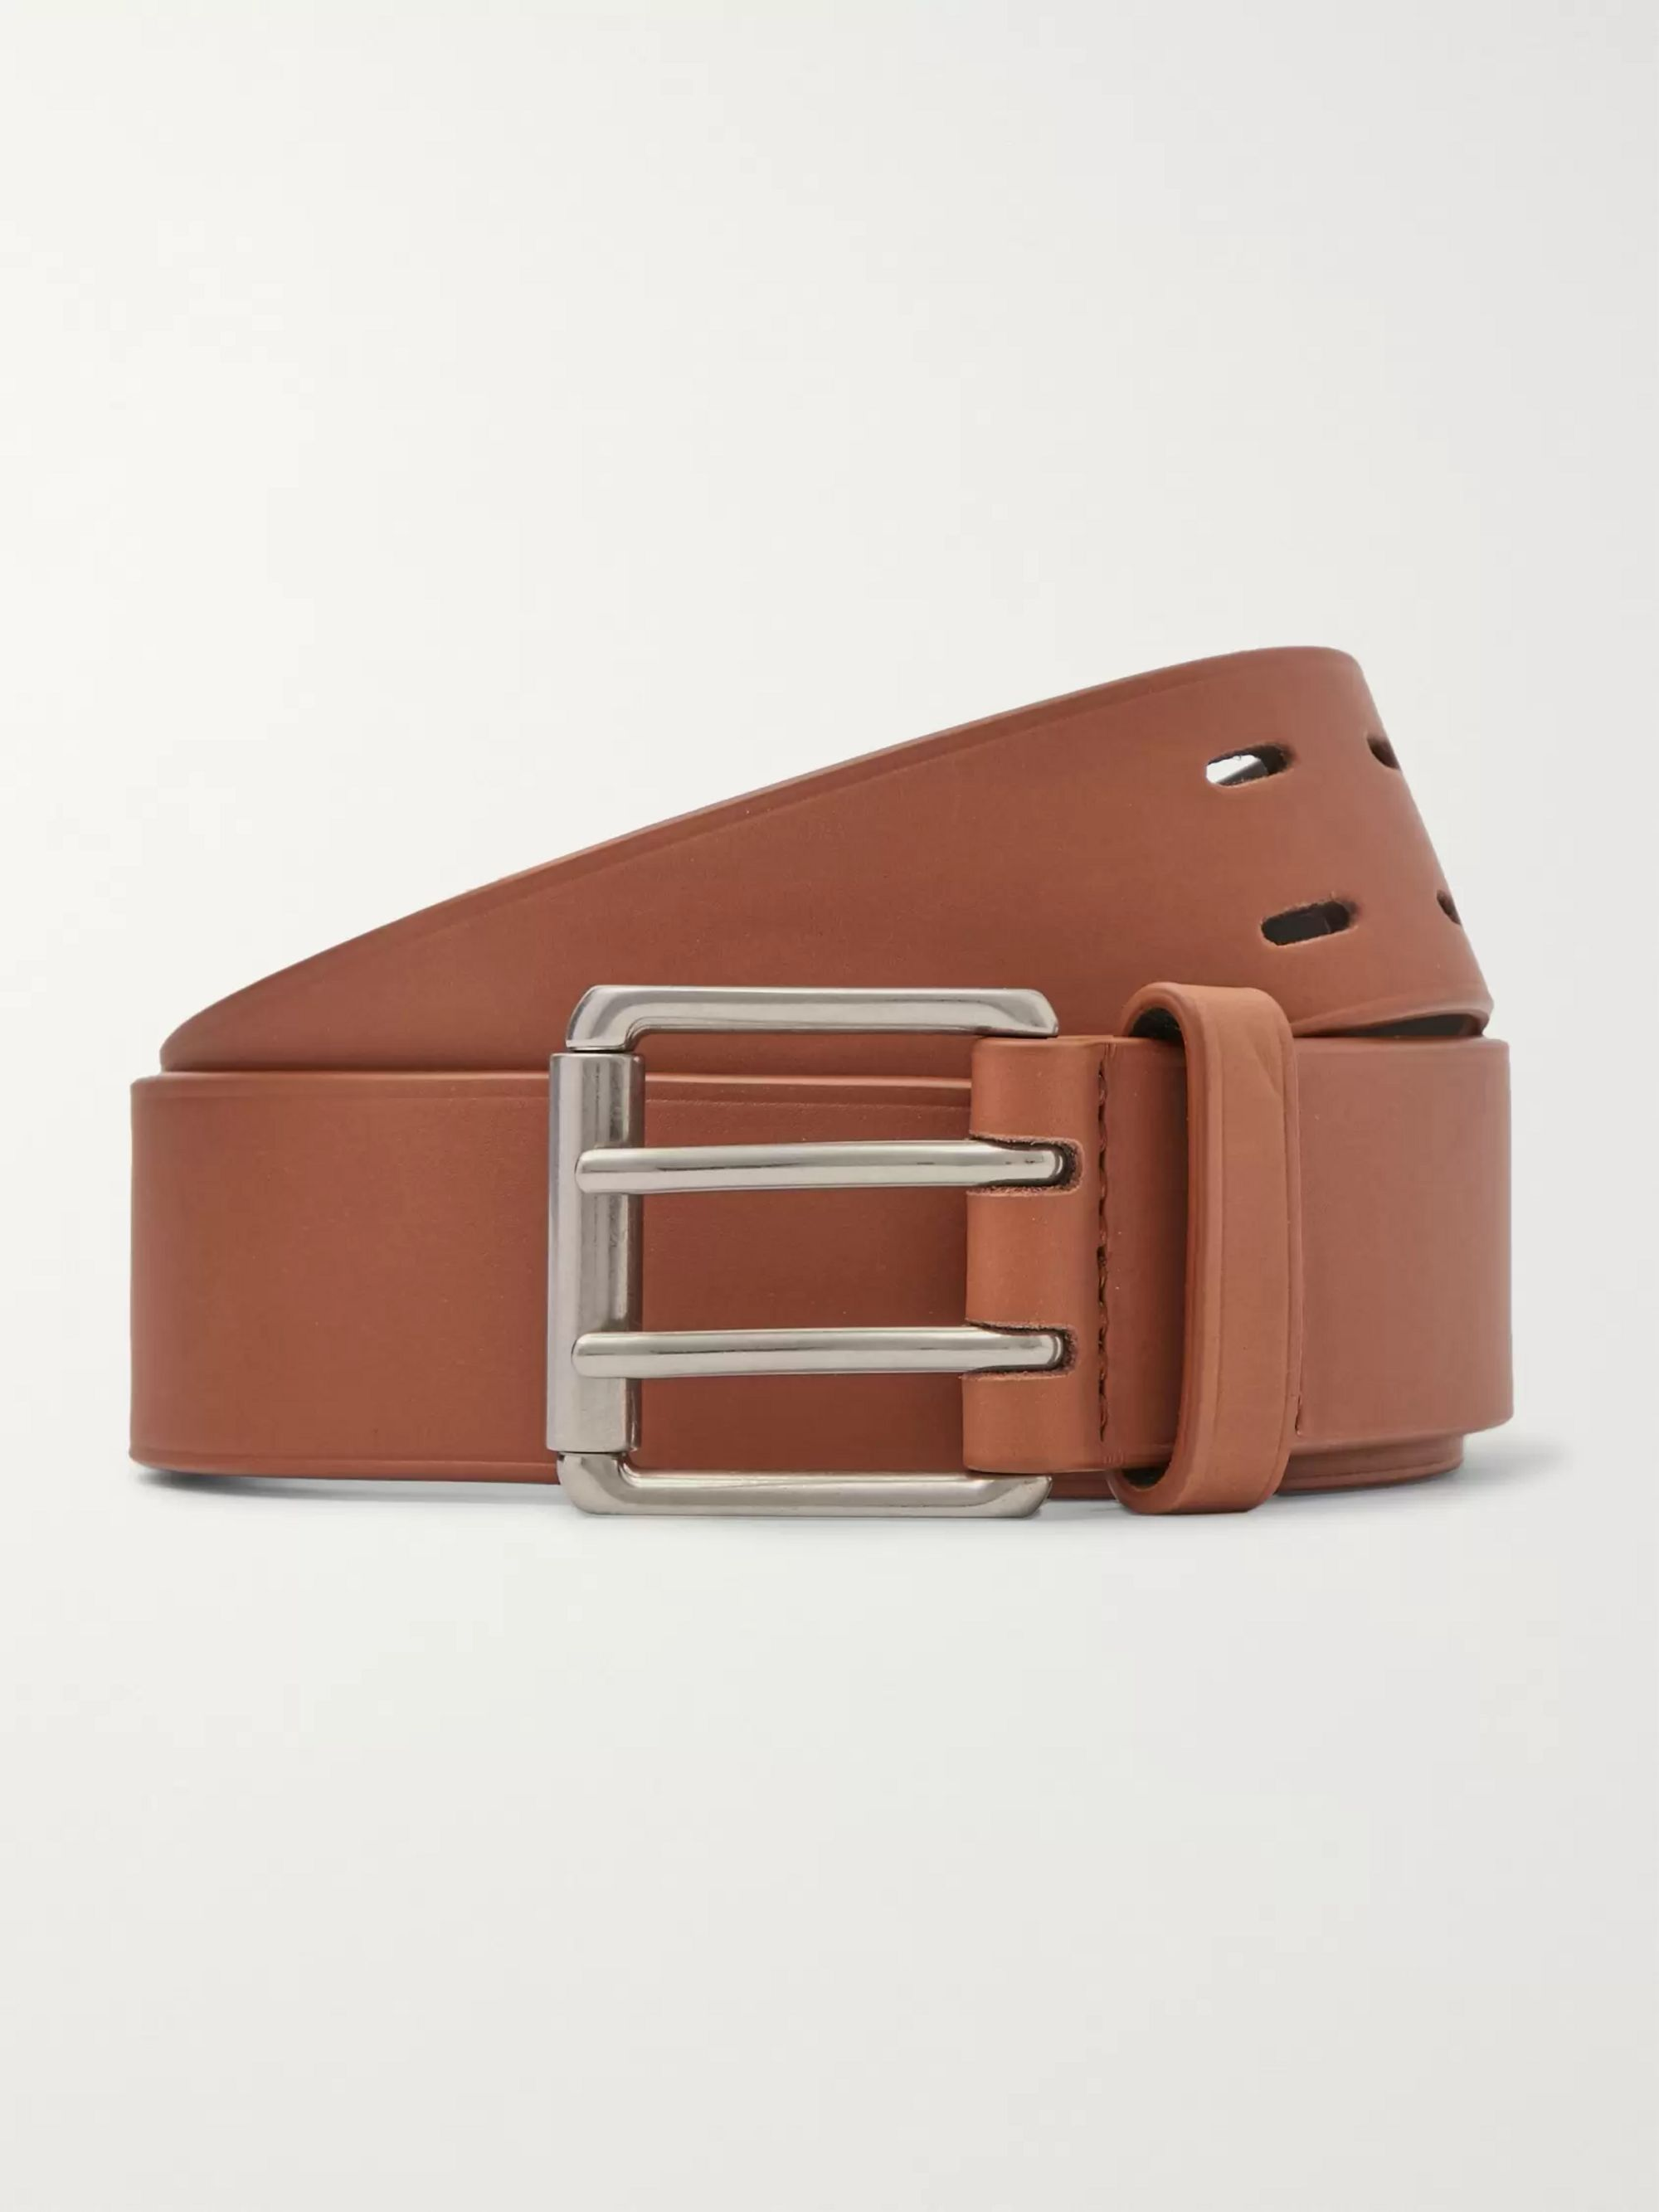 Bottega Veneta 3.5cm Tan Leather Belt